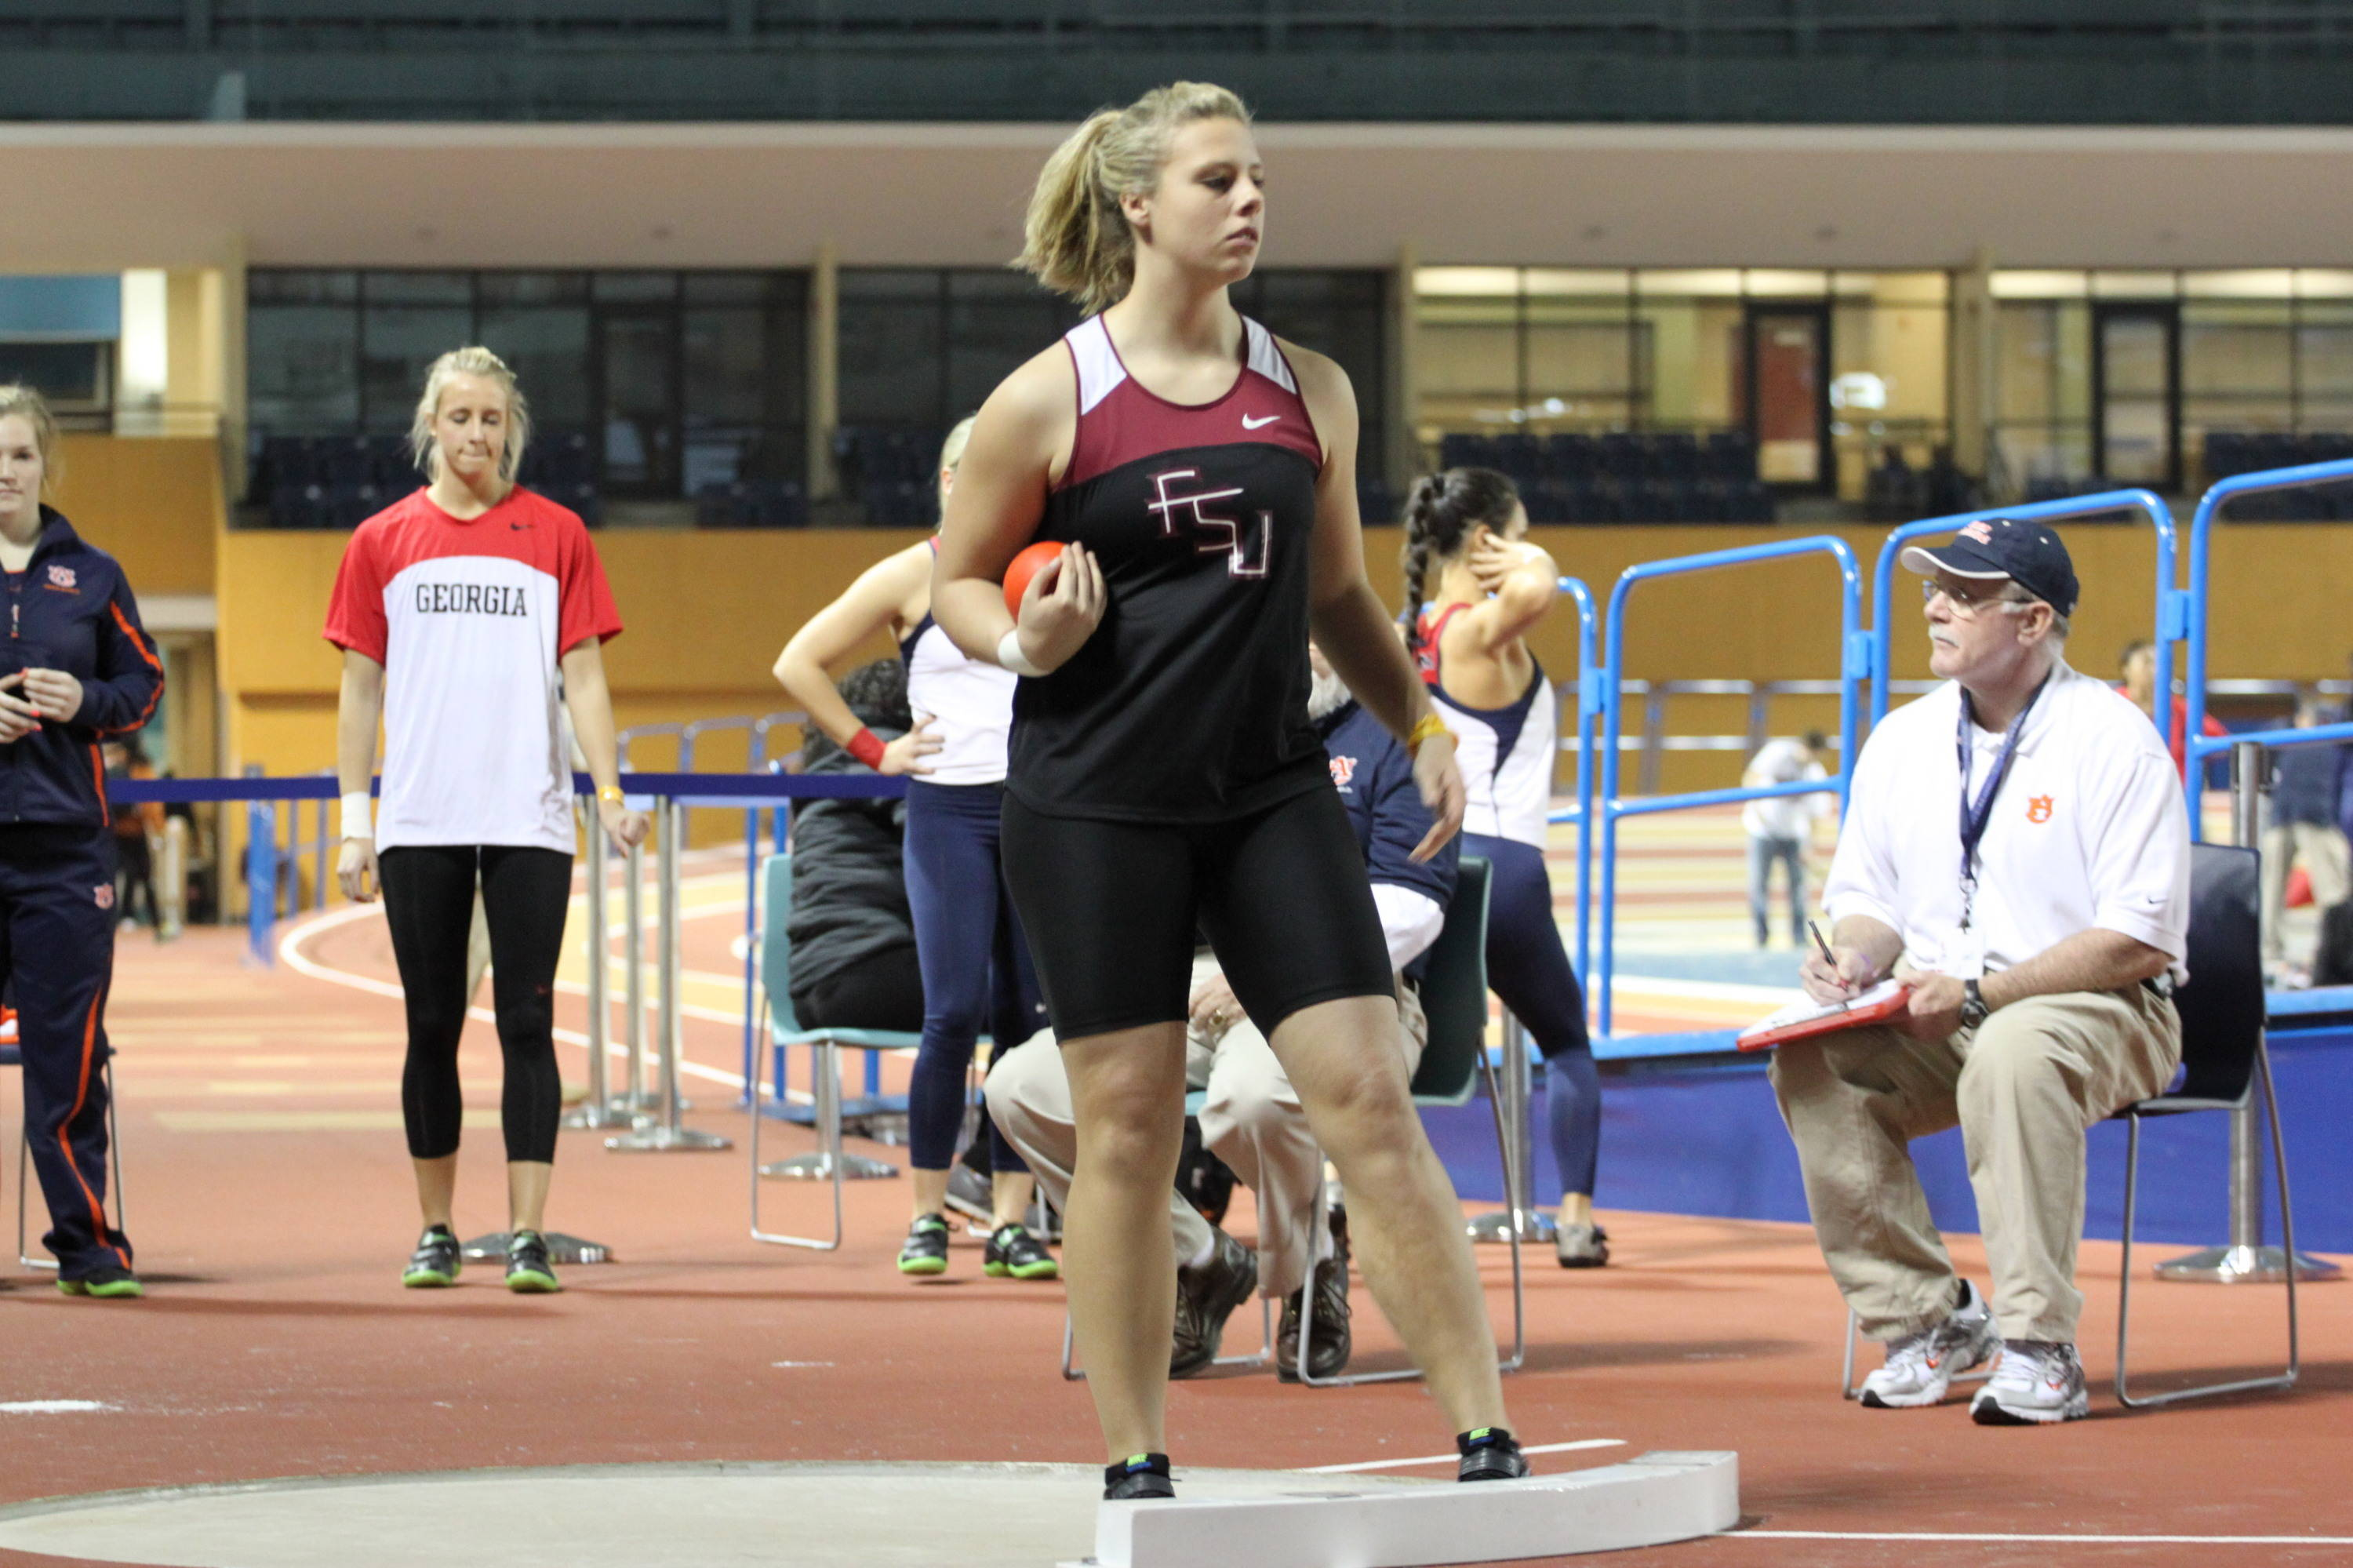 Sophomore Chelsea Whalen posted a career-best in the shot put with a throw of 15.02m (49-3 1/2), which was good for sixth place.